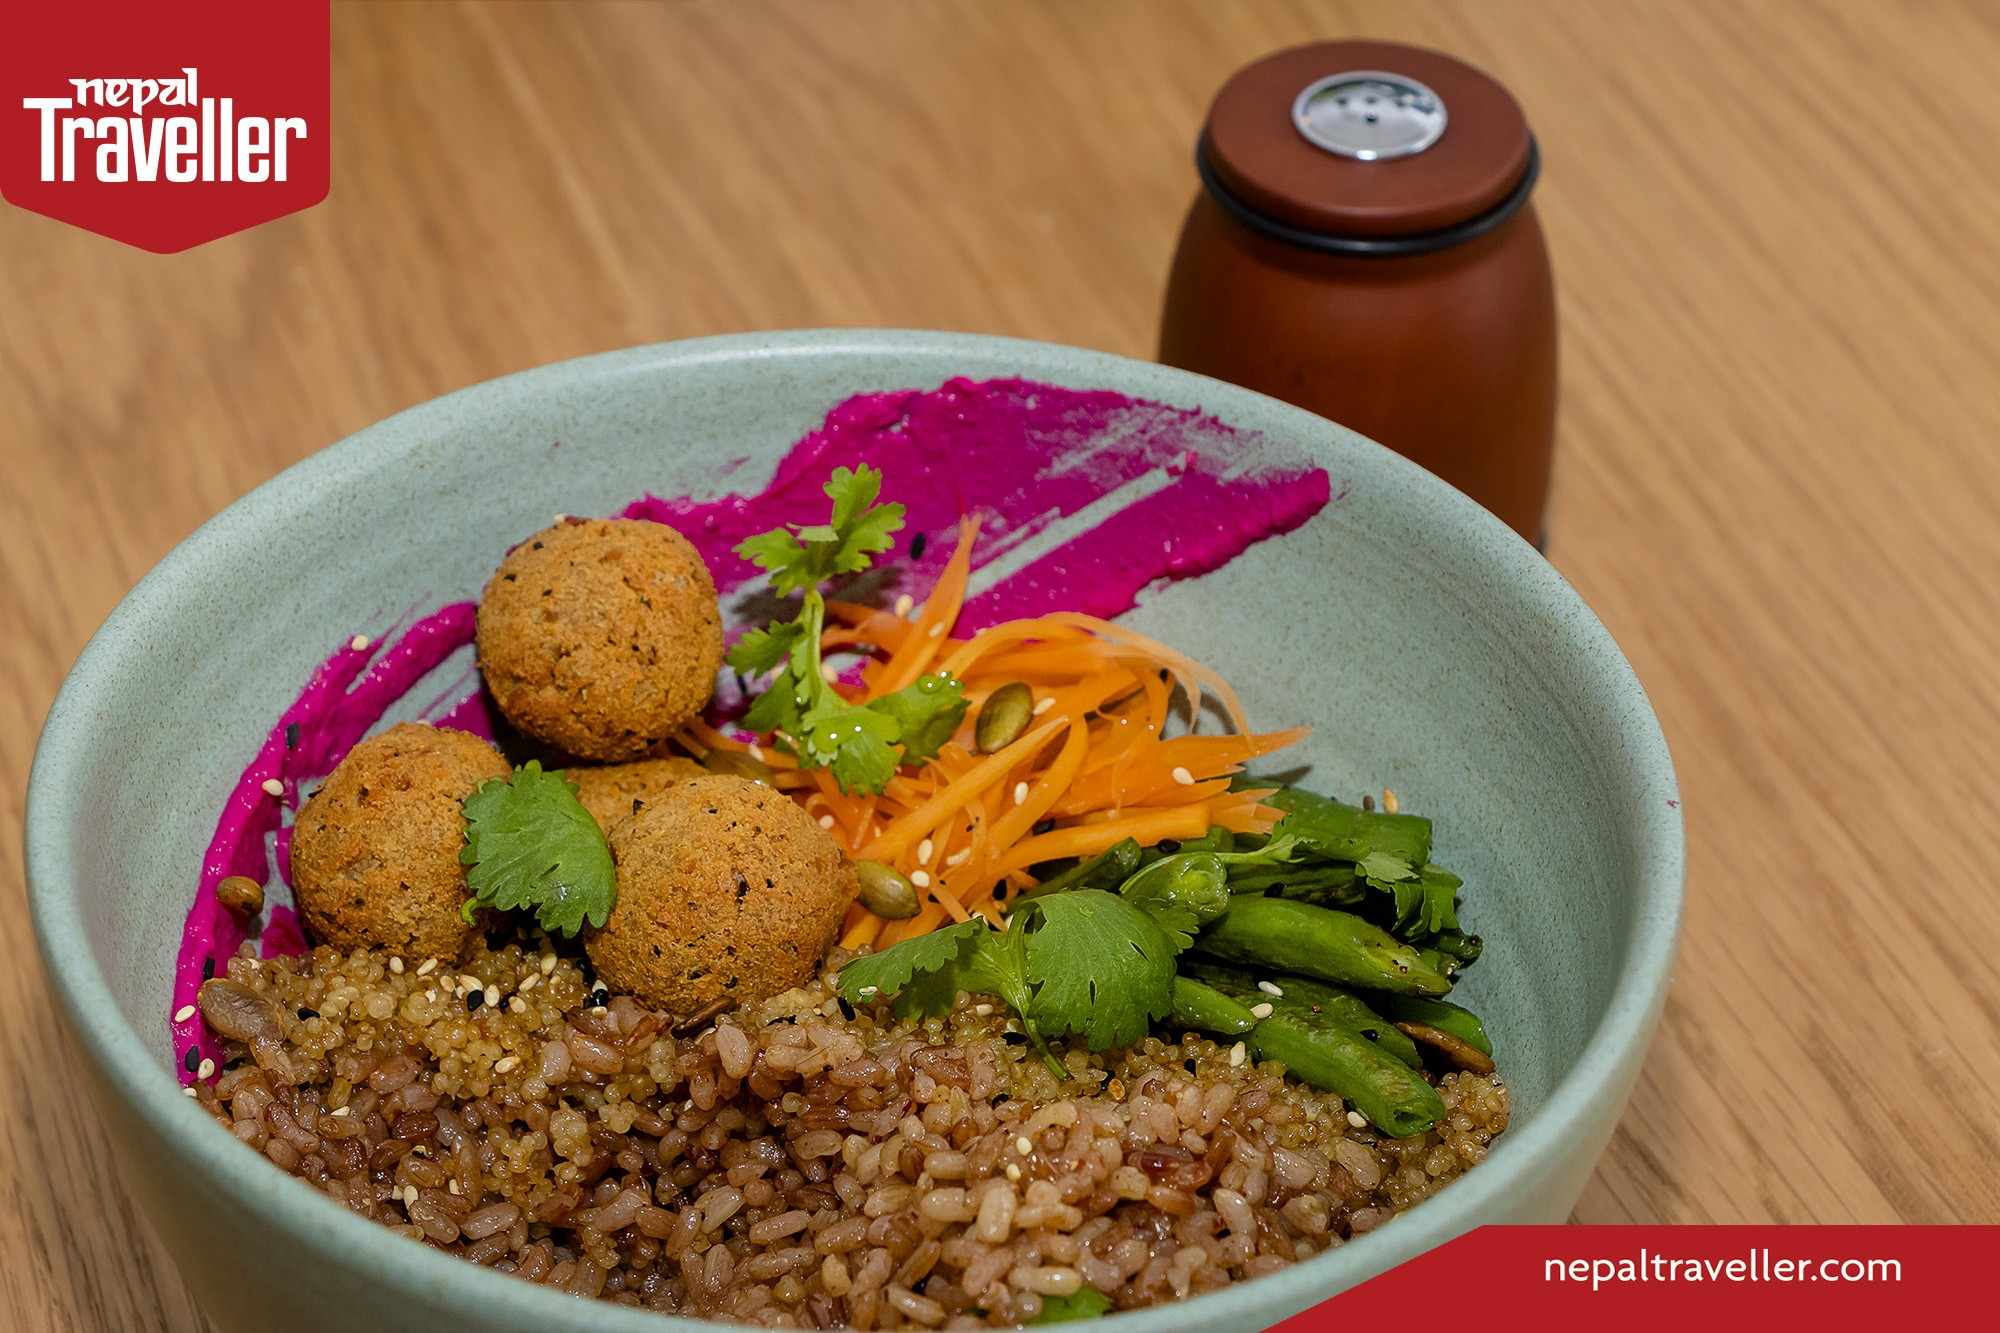 Spiced Red Rice Bowl with Fermented Veggies and Tofu Ball